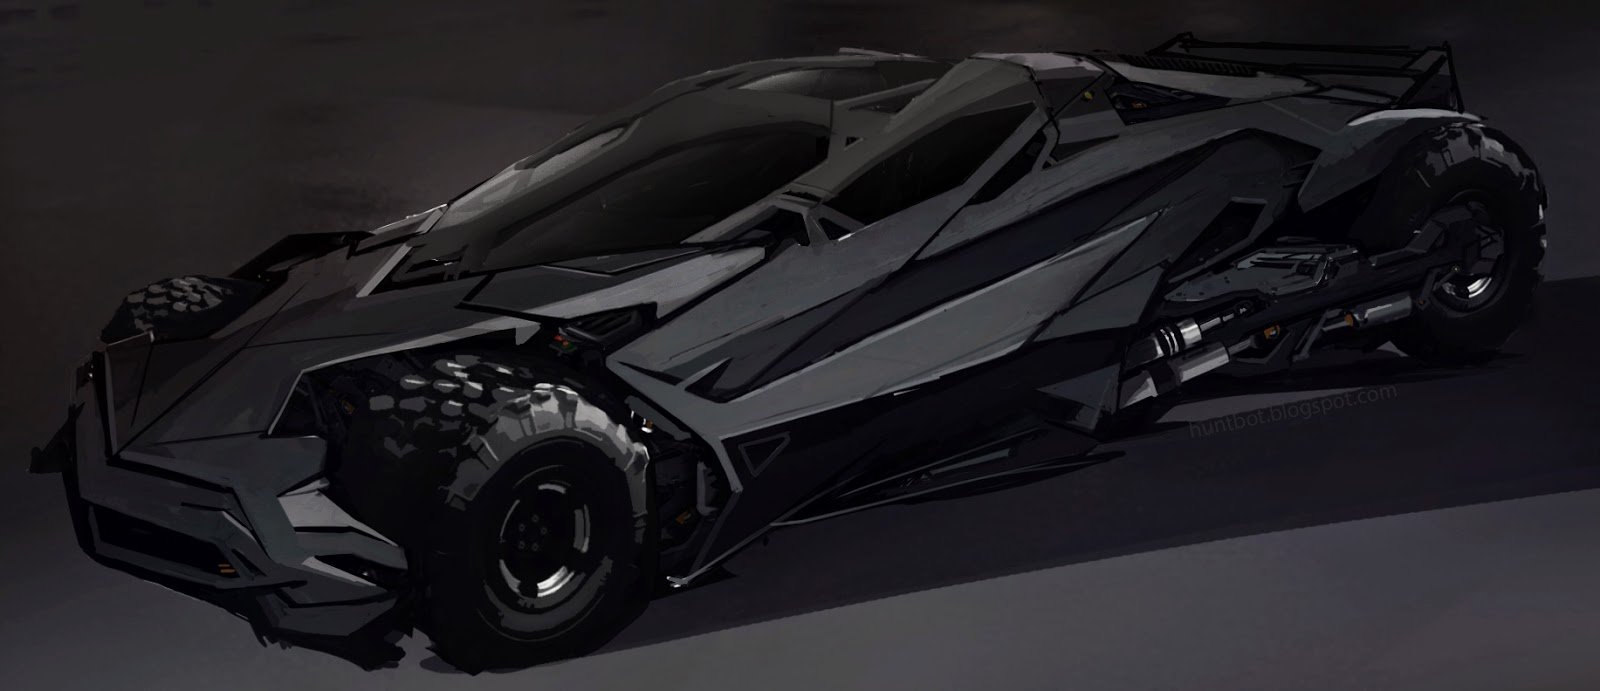 Hunt dougherty batmobile 01